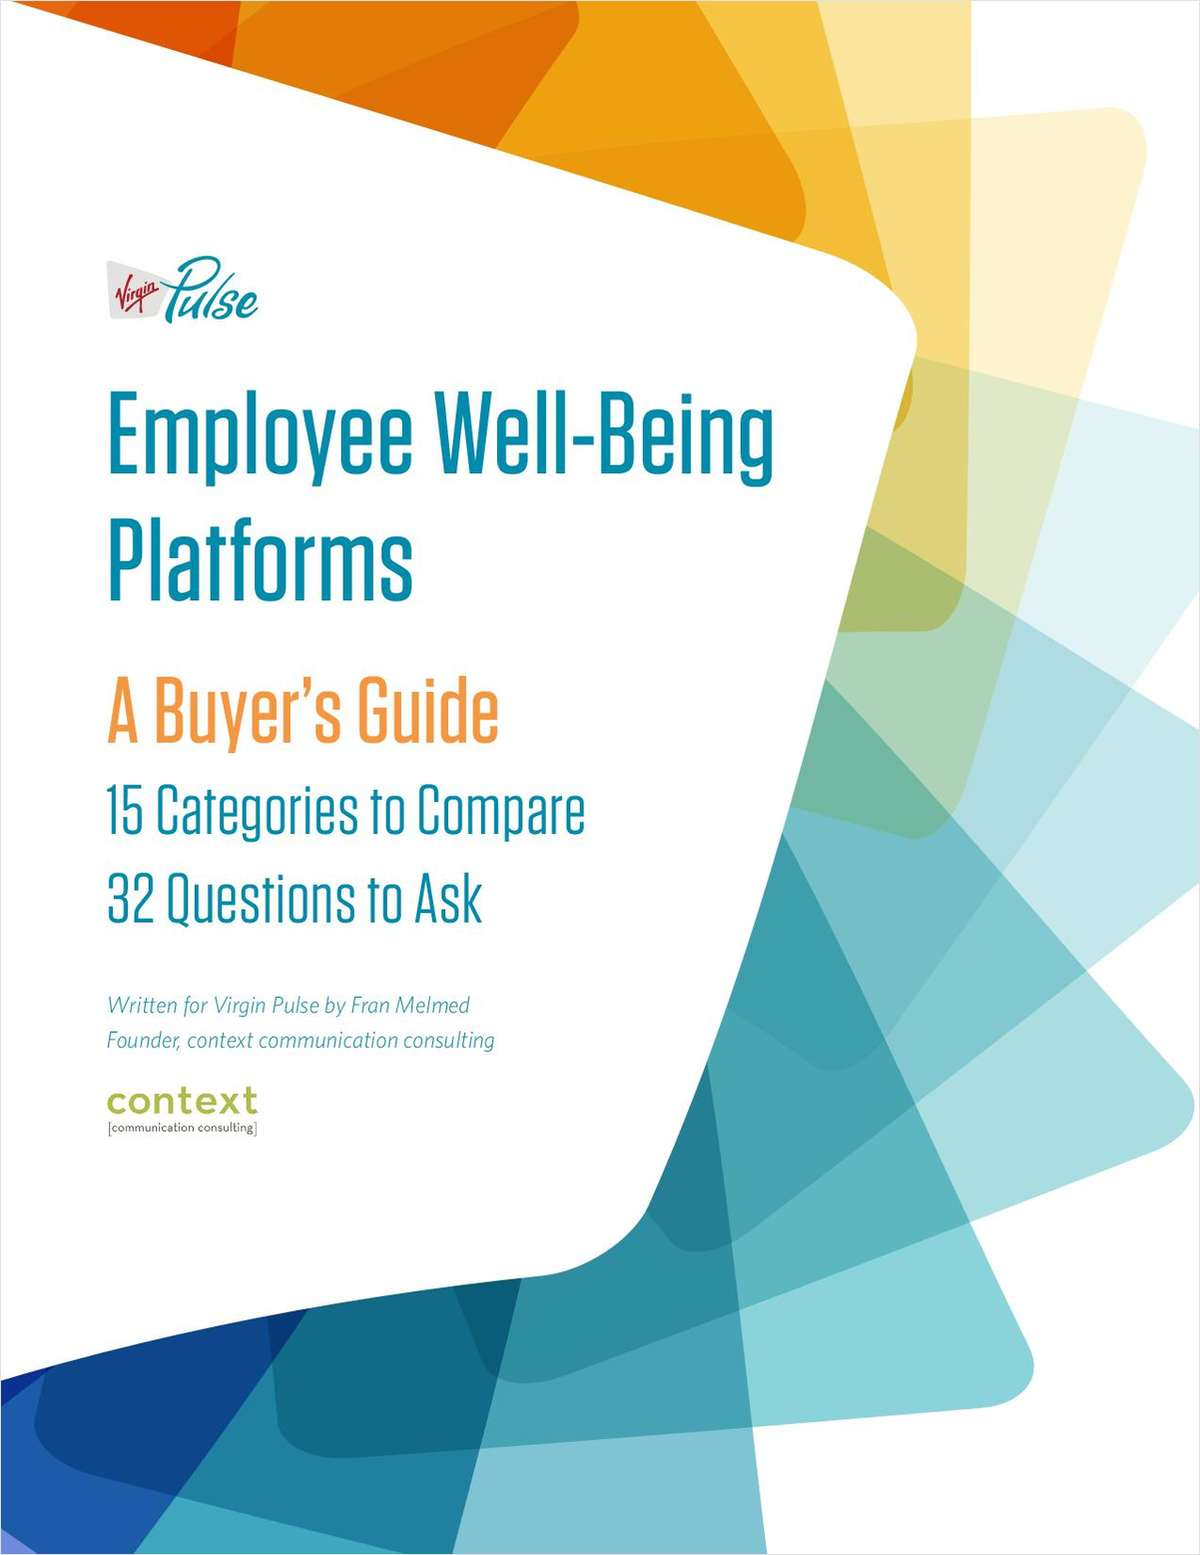 Your Guide to Purchasing an Employee Wellbeing Platform